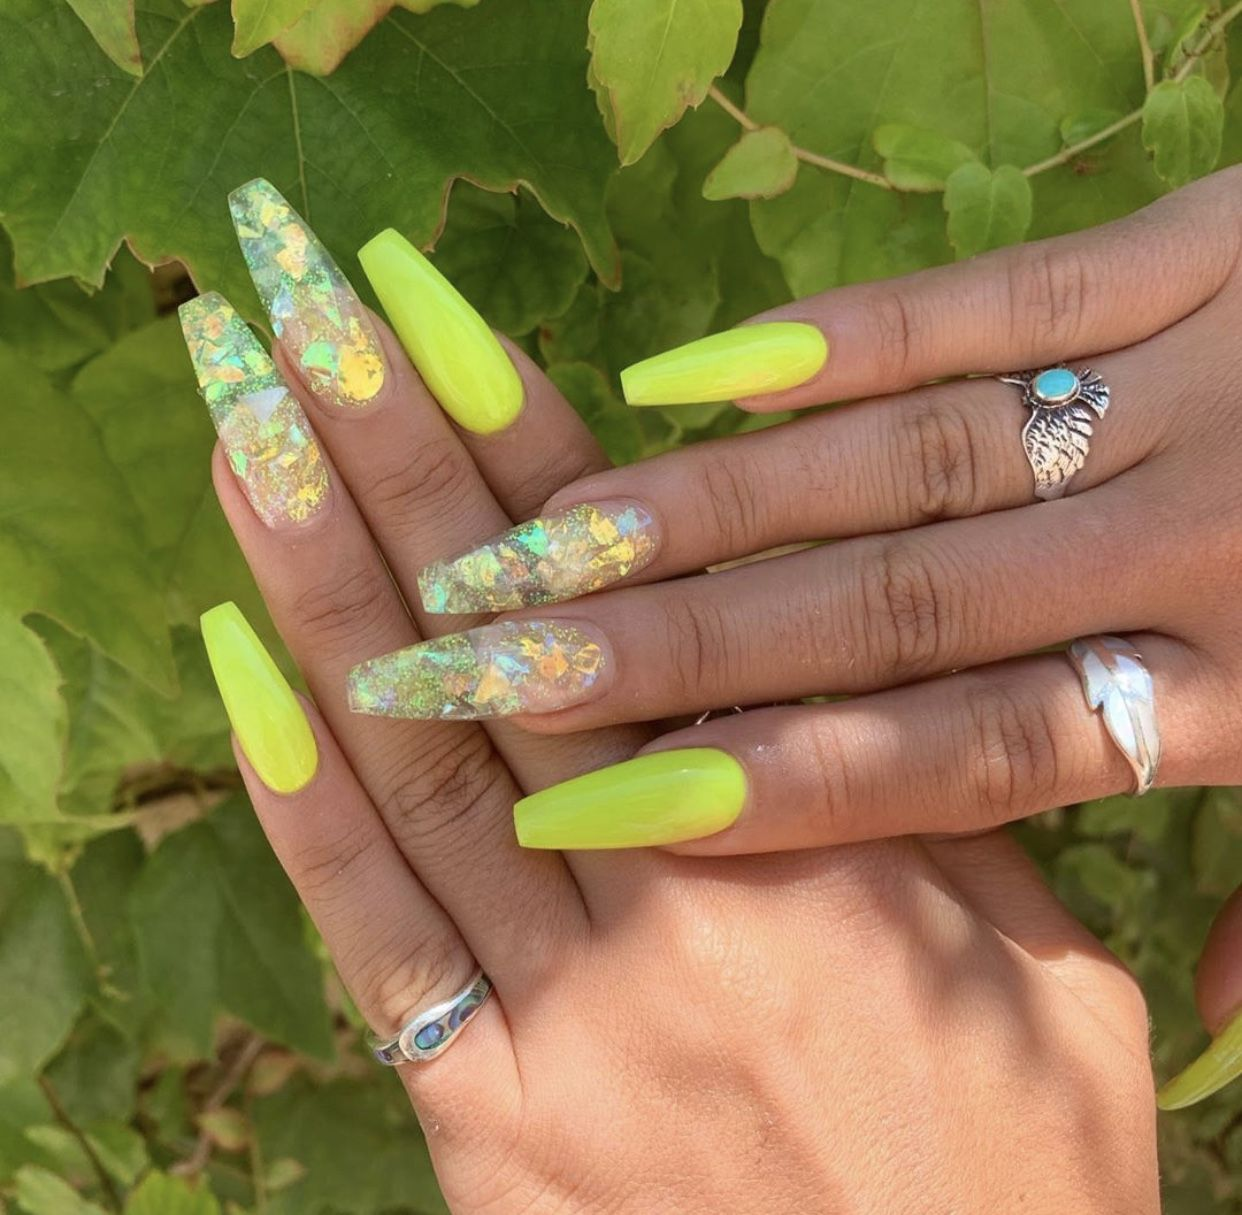 Nails Acrylicnails Nailart Neon Yellow Clear Longnails Rings Accessoriesjewelry Accessori Neon Acrylic Nails Acrylic Nails Yellow Yellow Nails Design